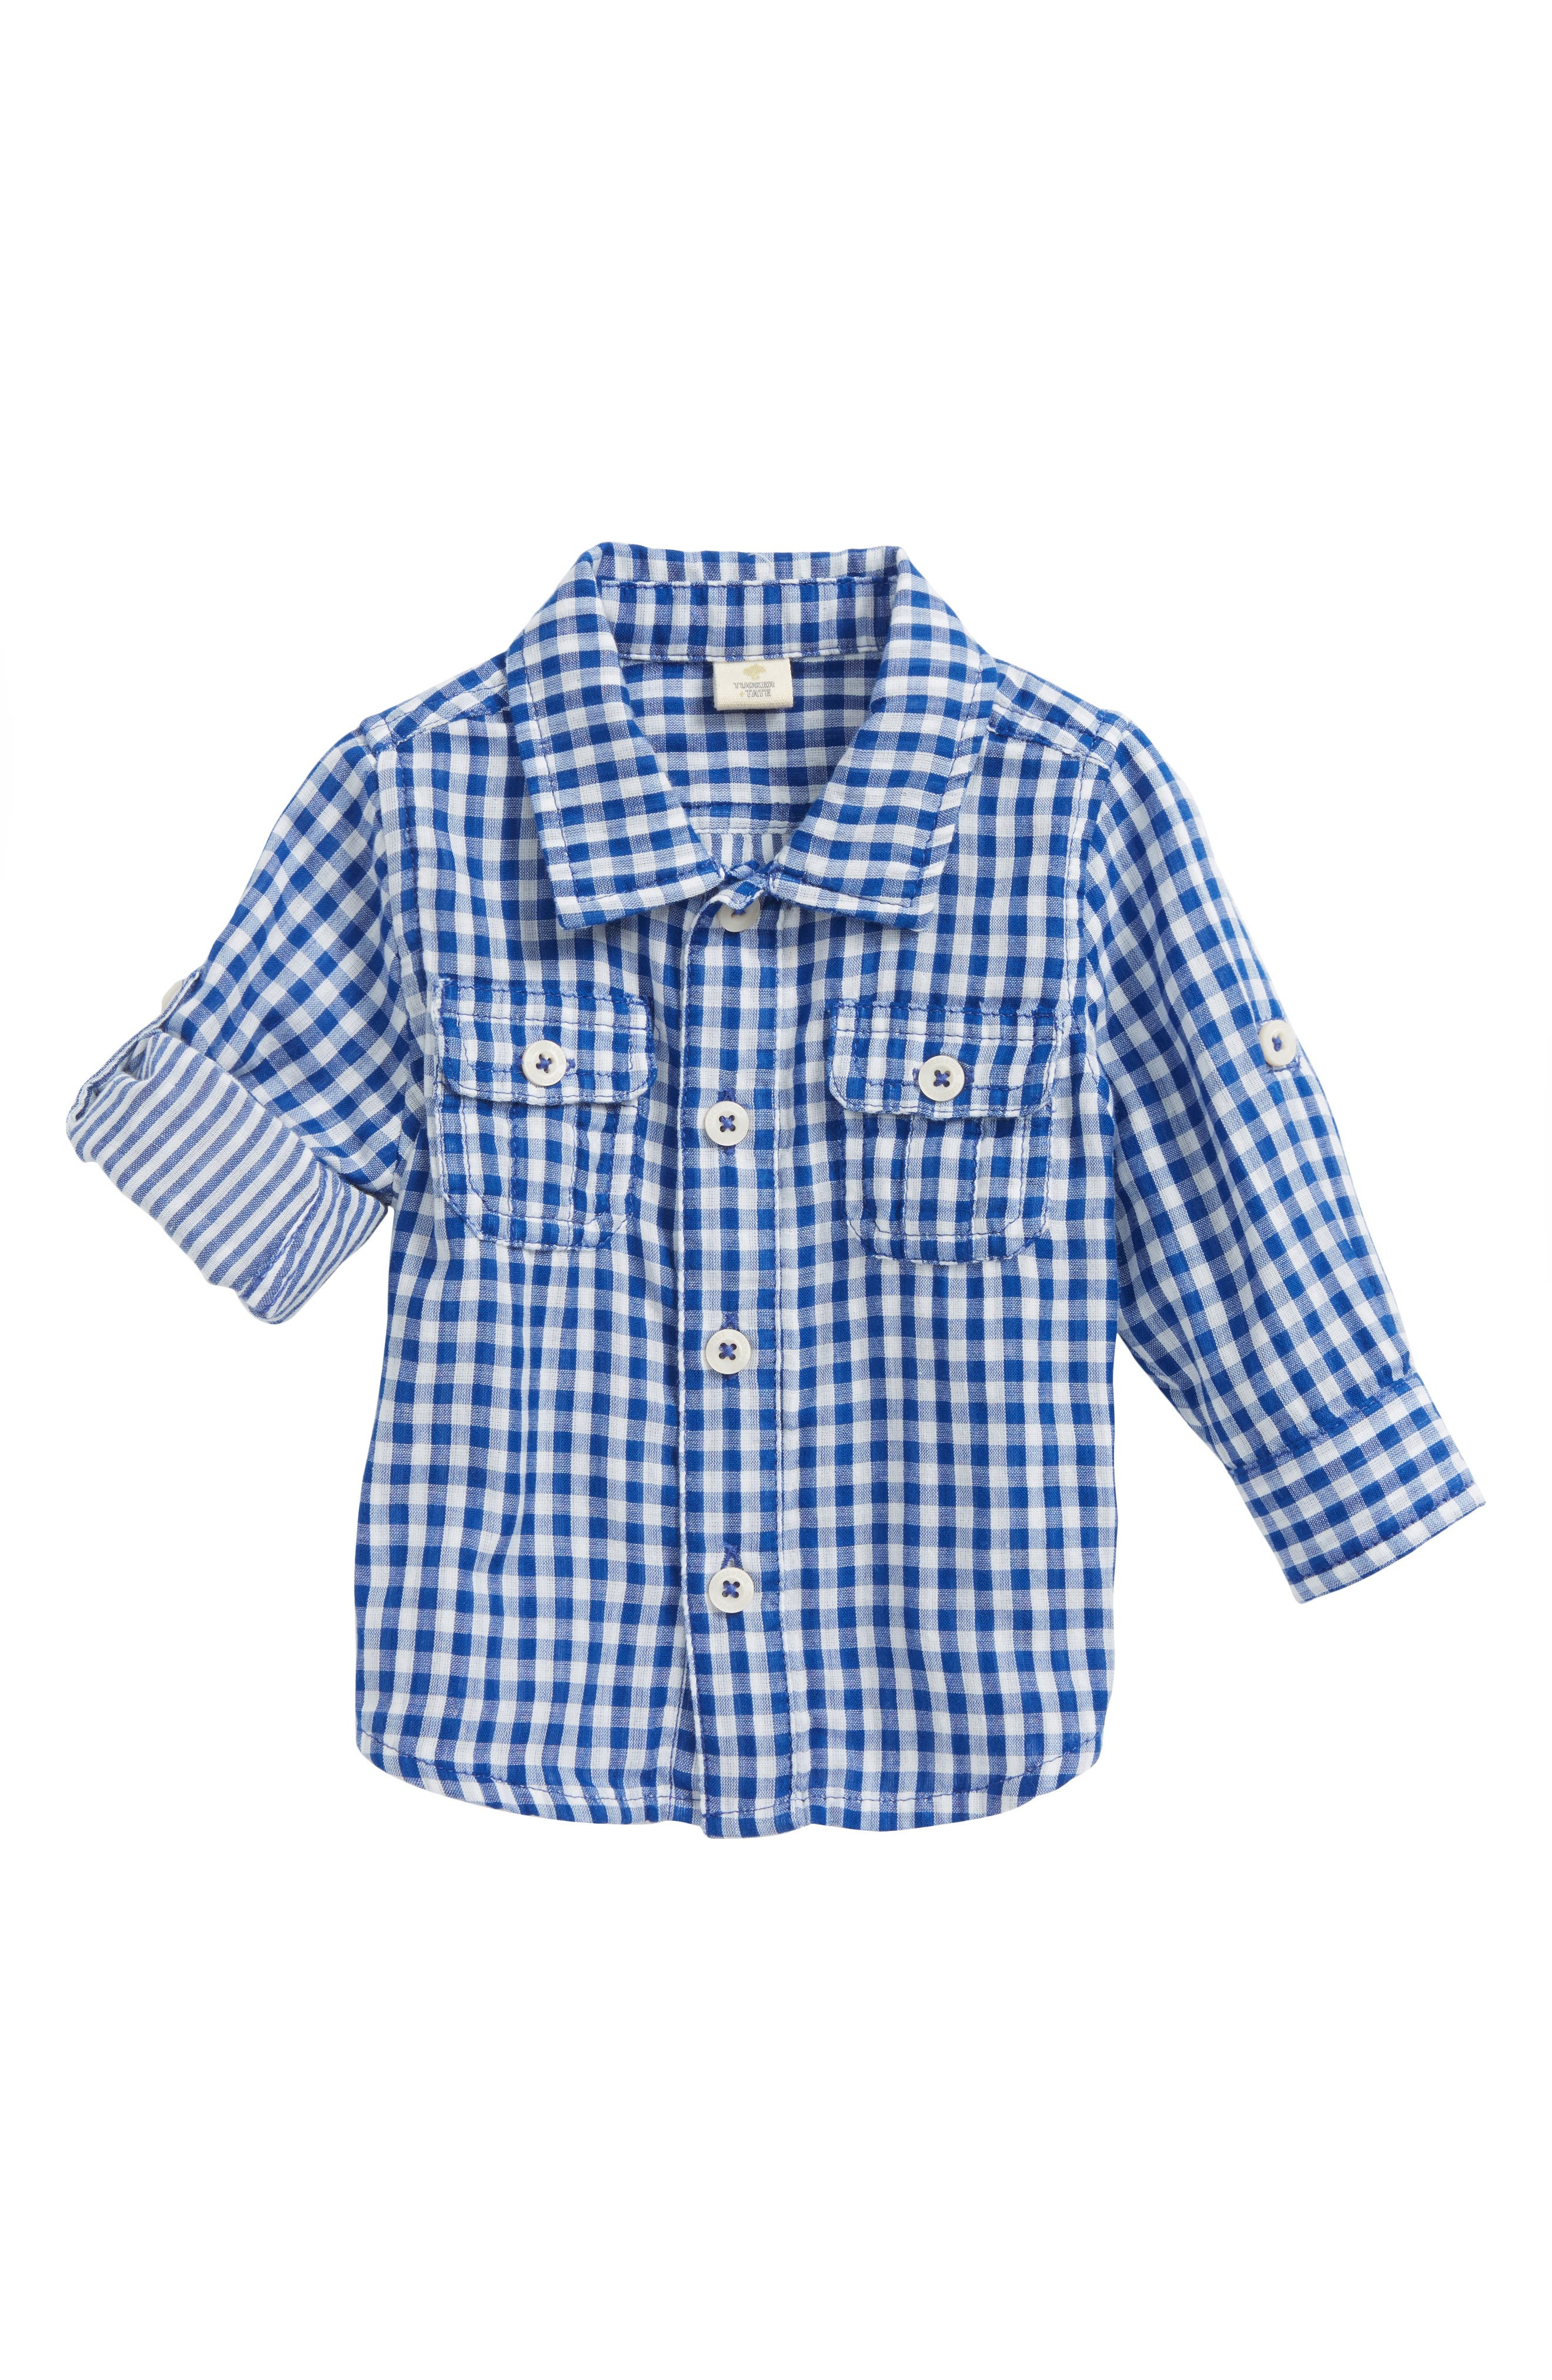 Tucker + Tate Double Woven Shirt (Baby Boys)